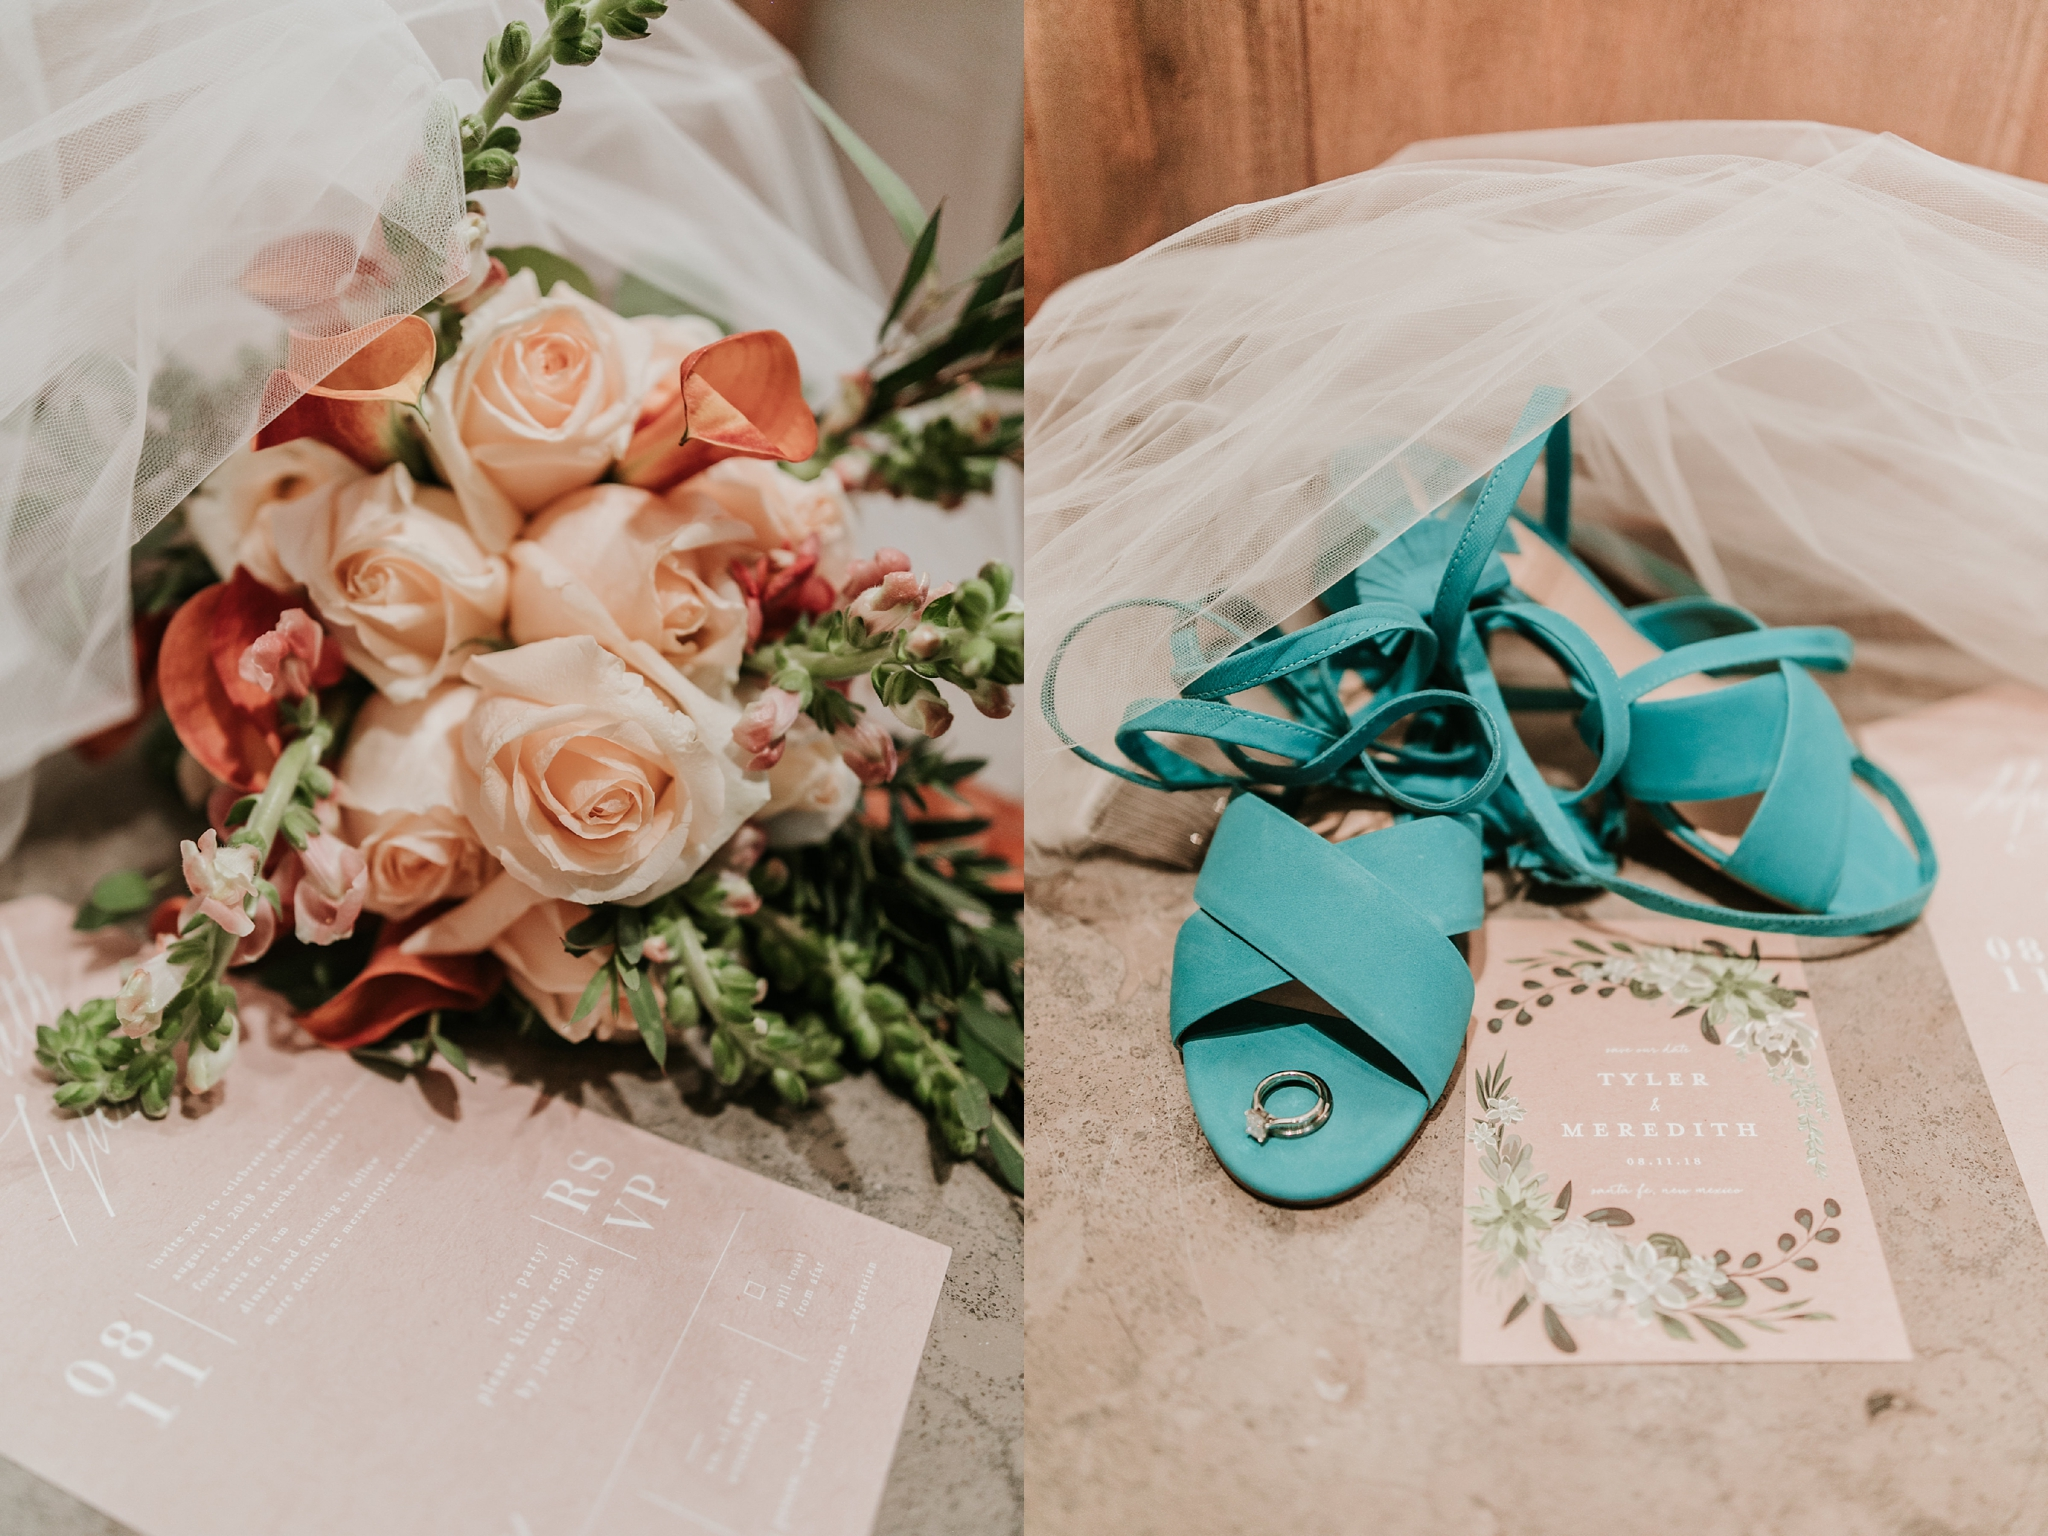 Alicia+lucia+photography+-+albuquerque+wedding+photographer+-+santa+fe+wedding+photography+-+new+mexico+wedding+photographer+-+new+mexico+wedding+-+wedding+invitations+-+invitation+suite+-+wedding+inspo_0027.jpg